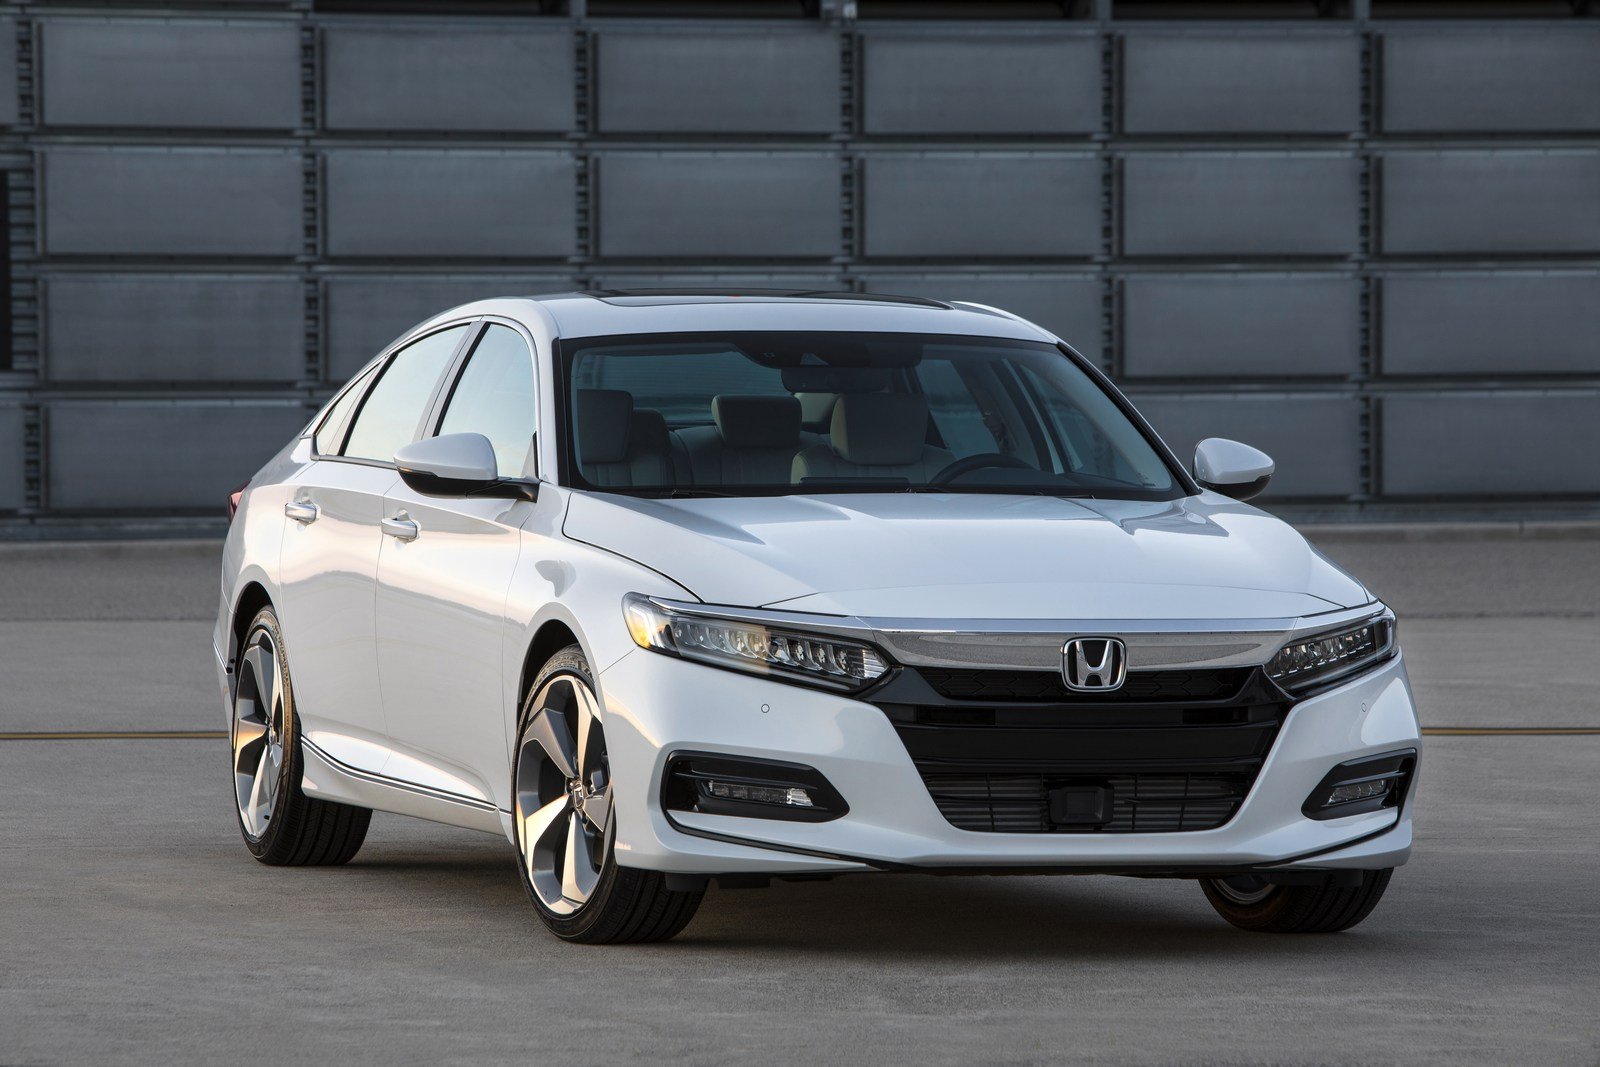 2018 honda accord unveiled with turbocharged four cylinder for Honda accord 4 cylinder